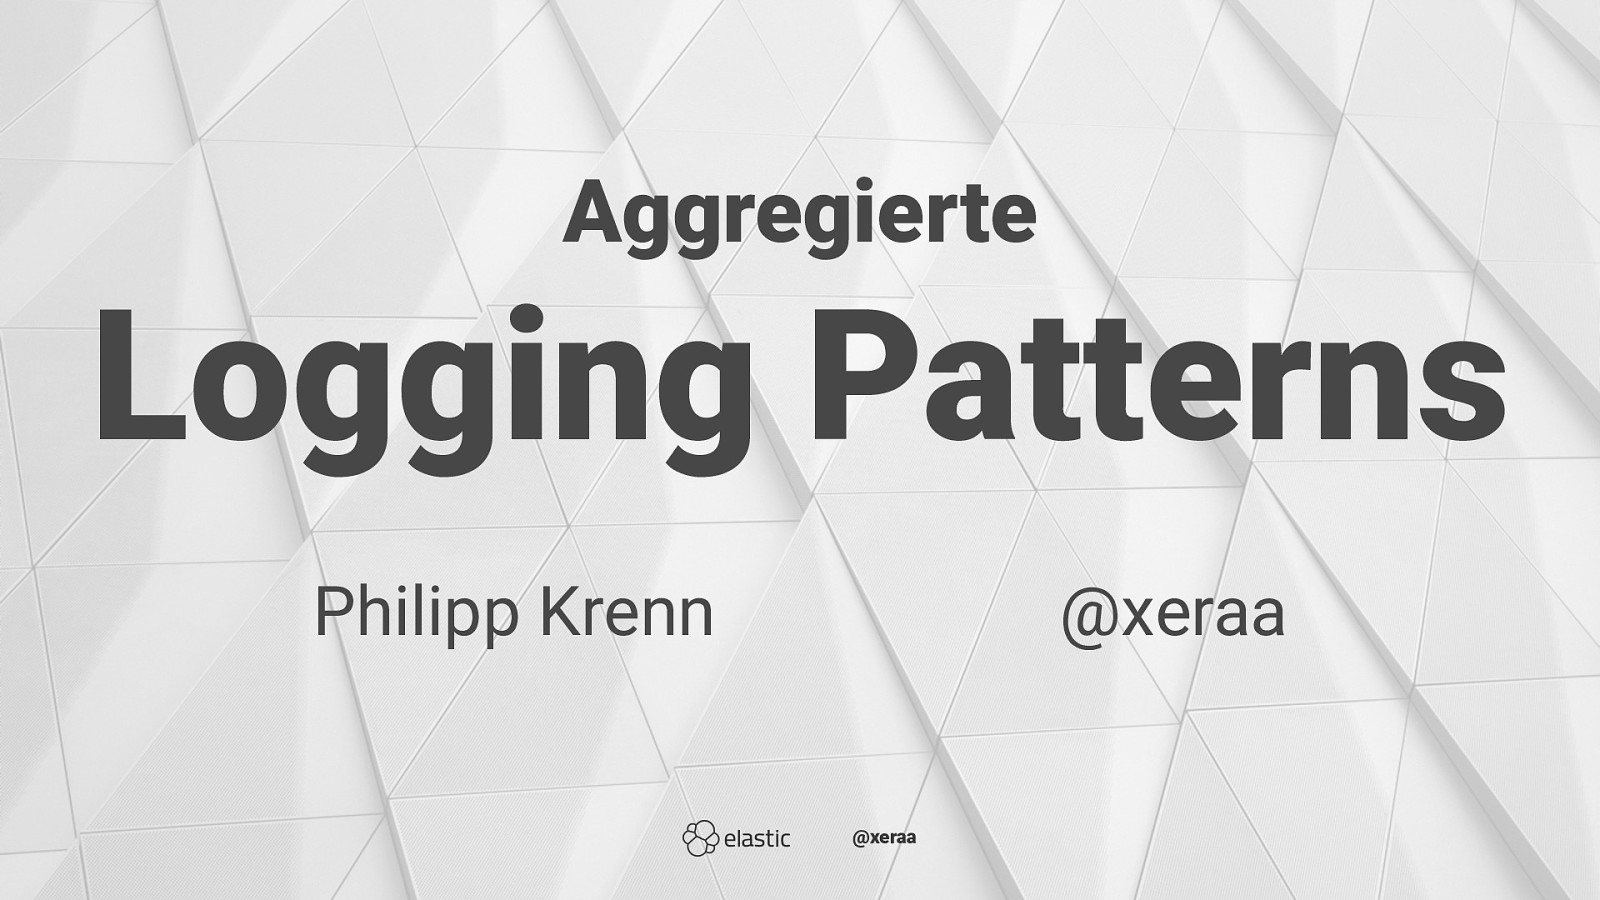 Aggregierte Logging Patterns